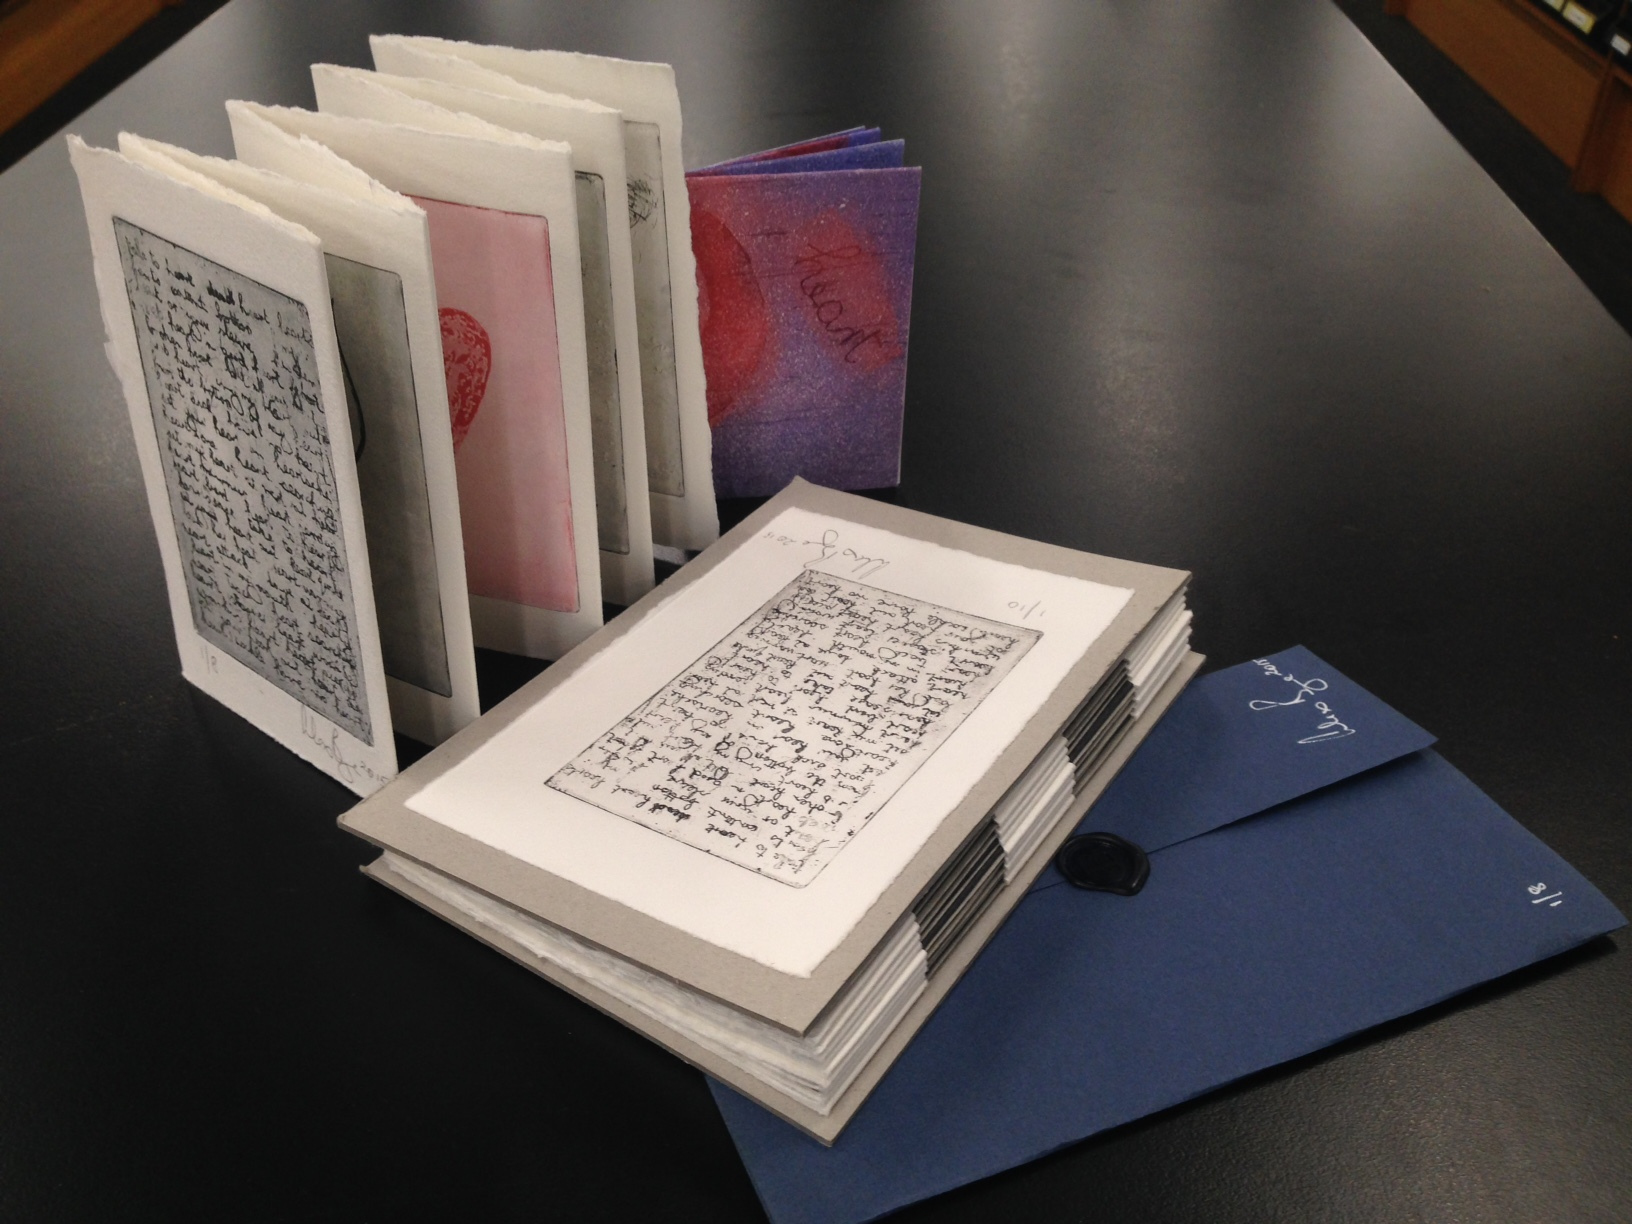 Four artists' books shown together on a table